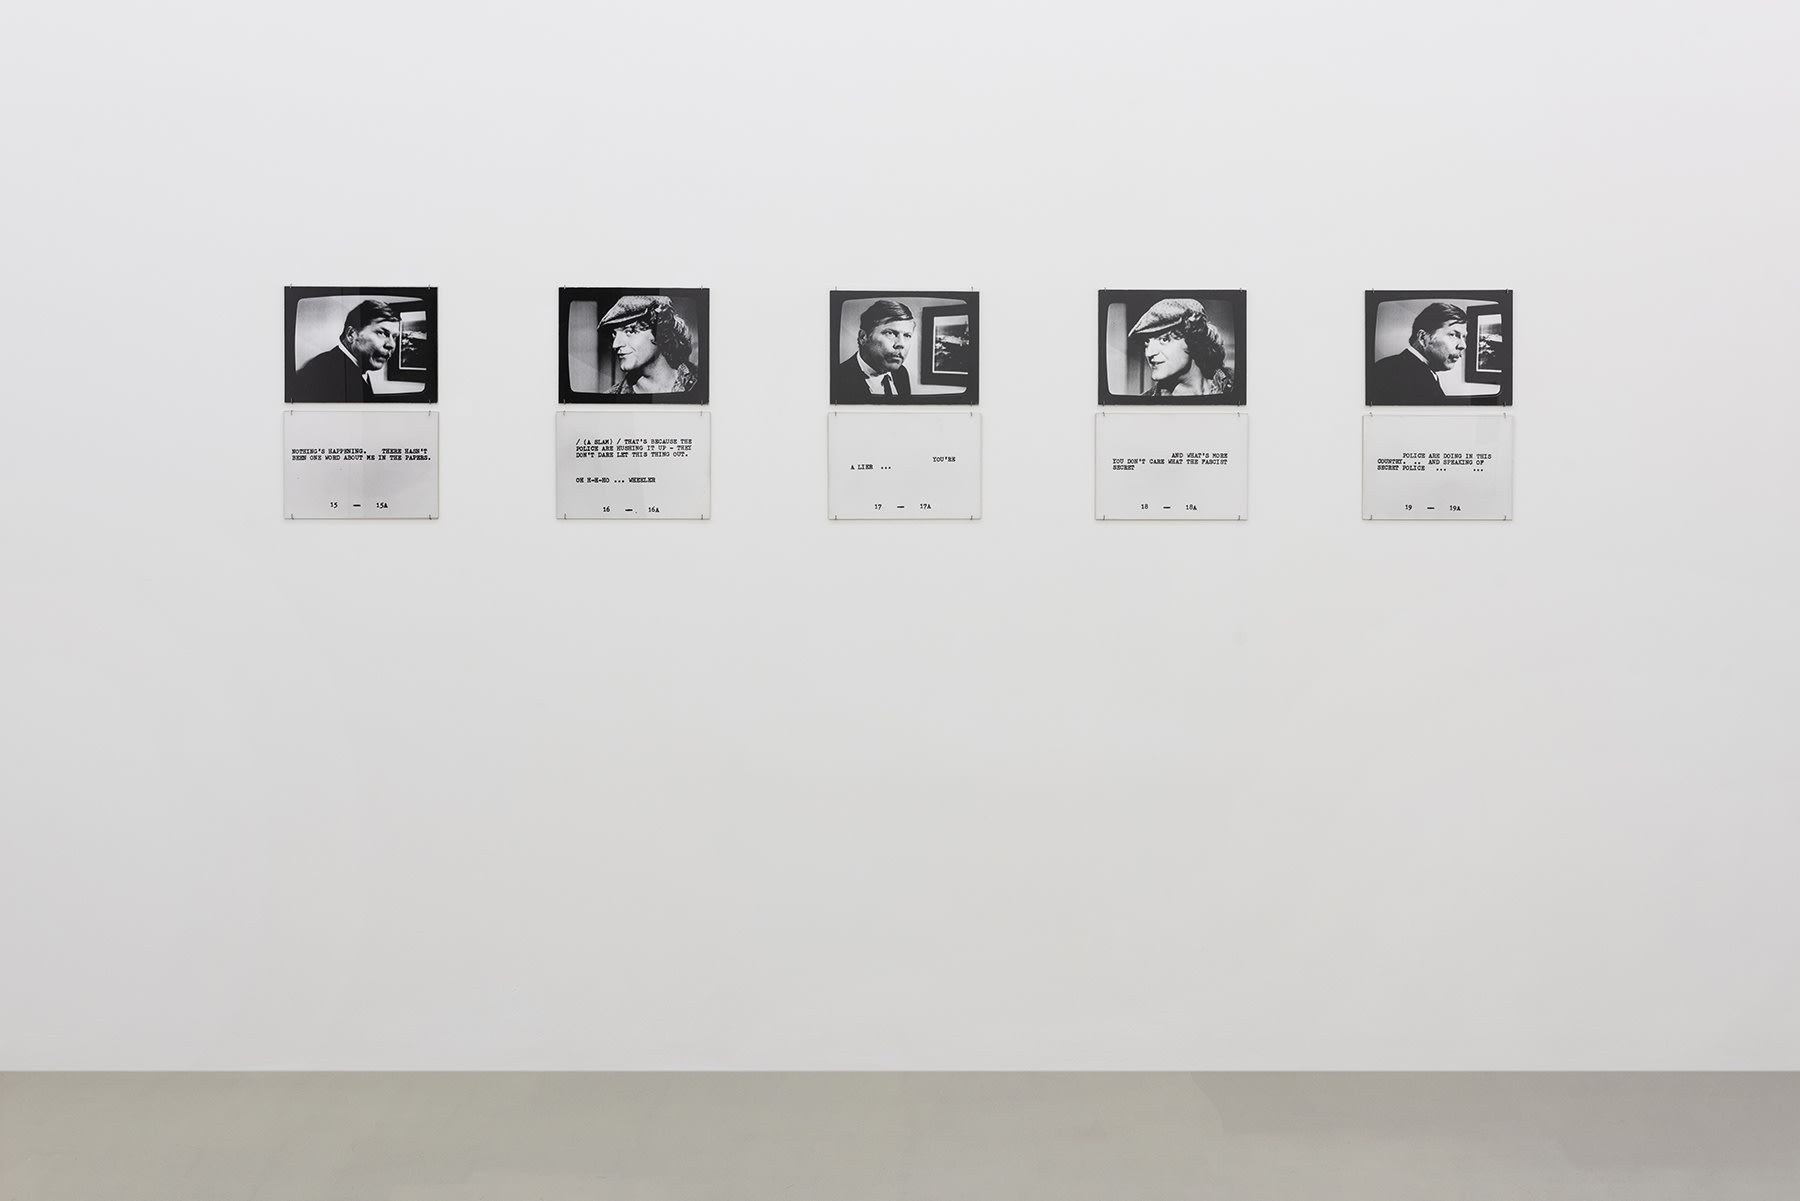 5 black and white photographs are displayed with text underneath.